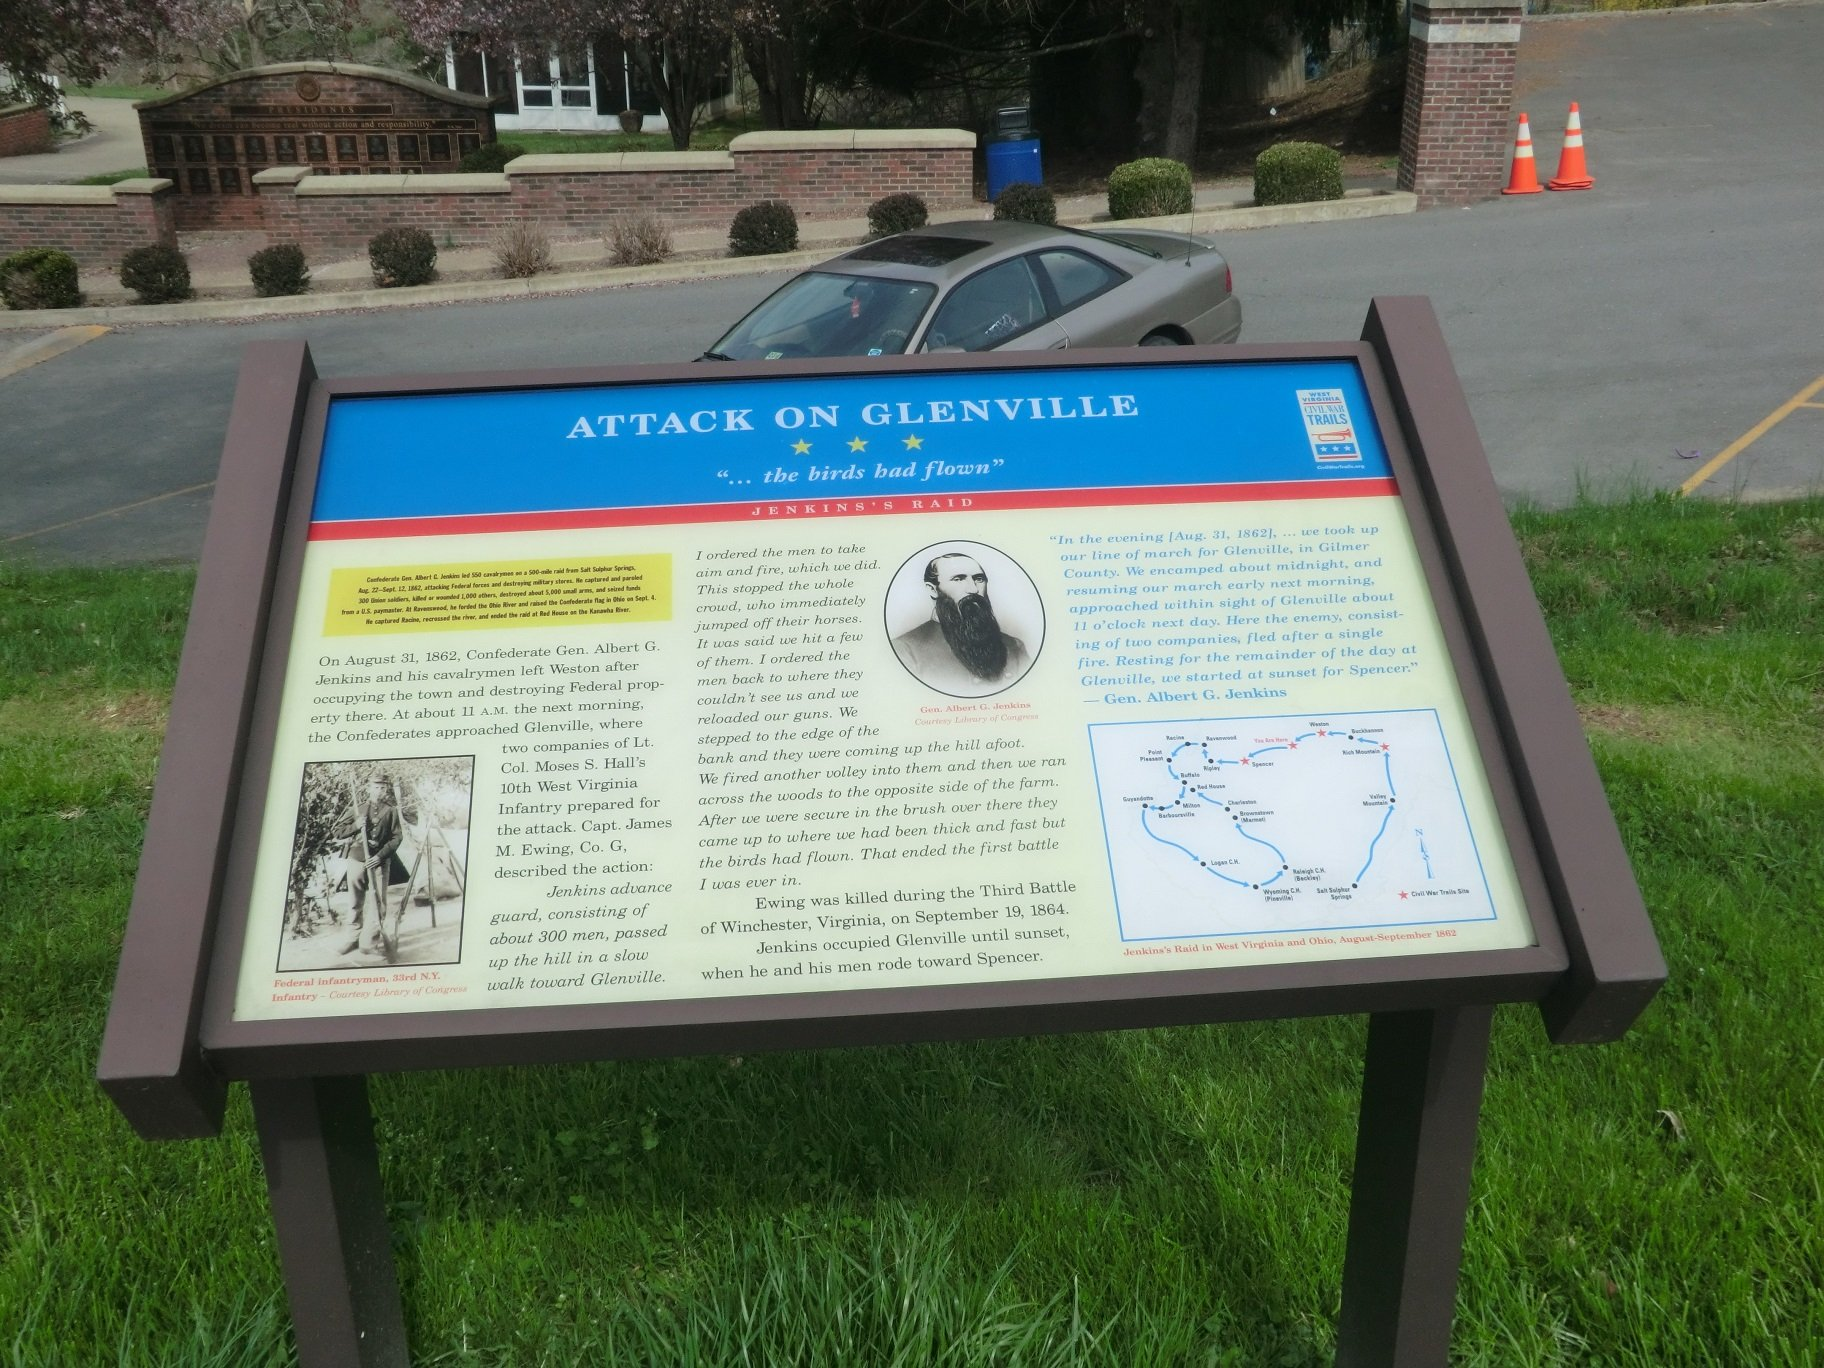 Attack on Glenville Marker.